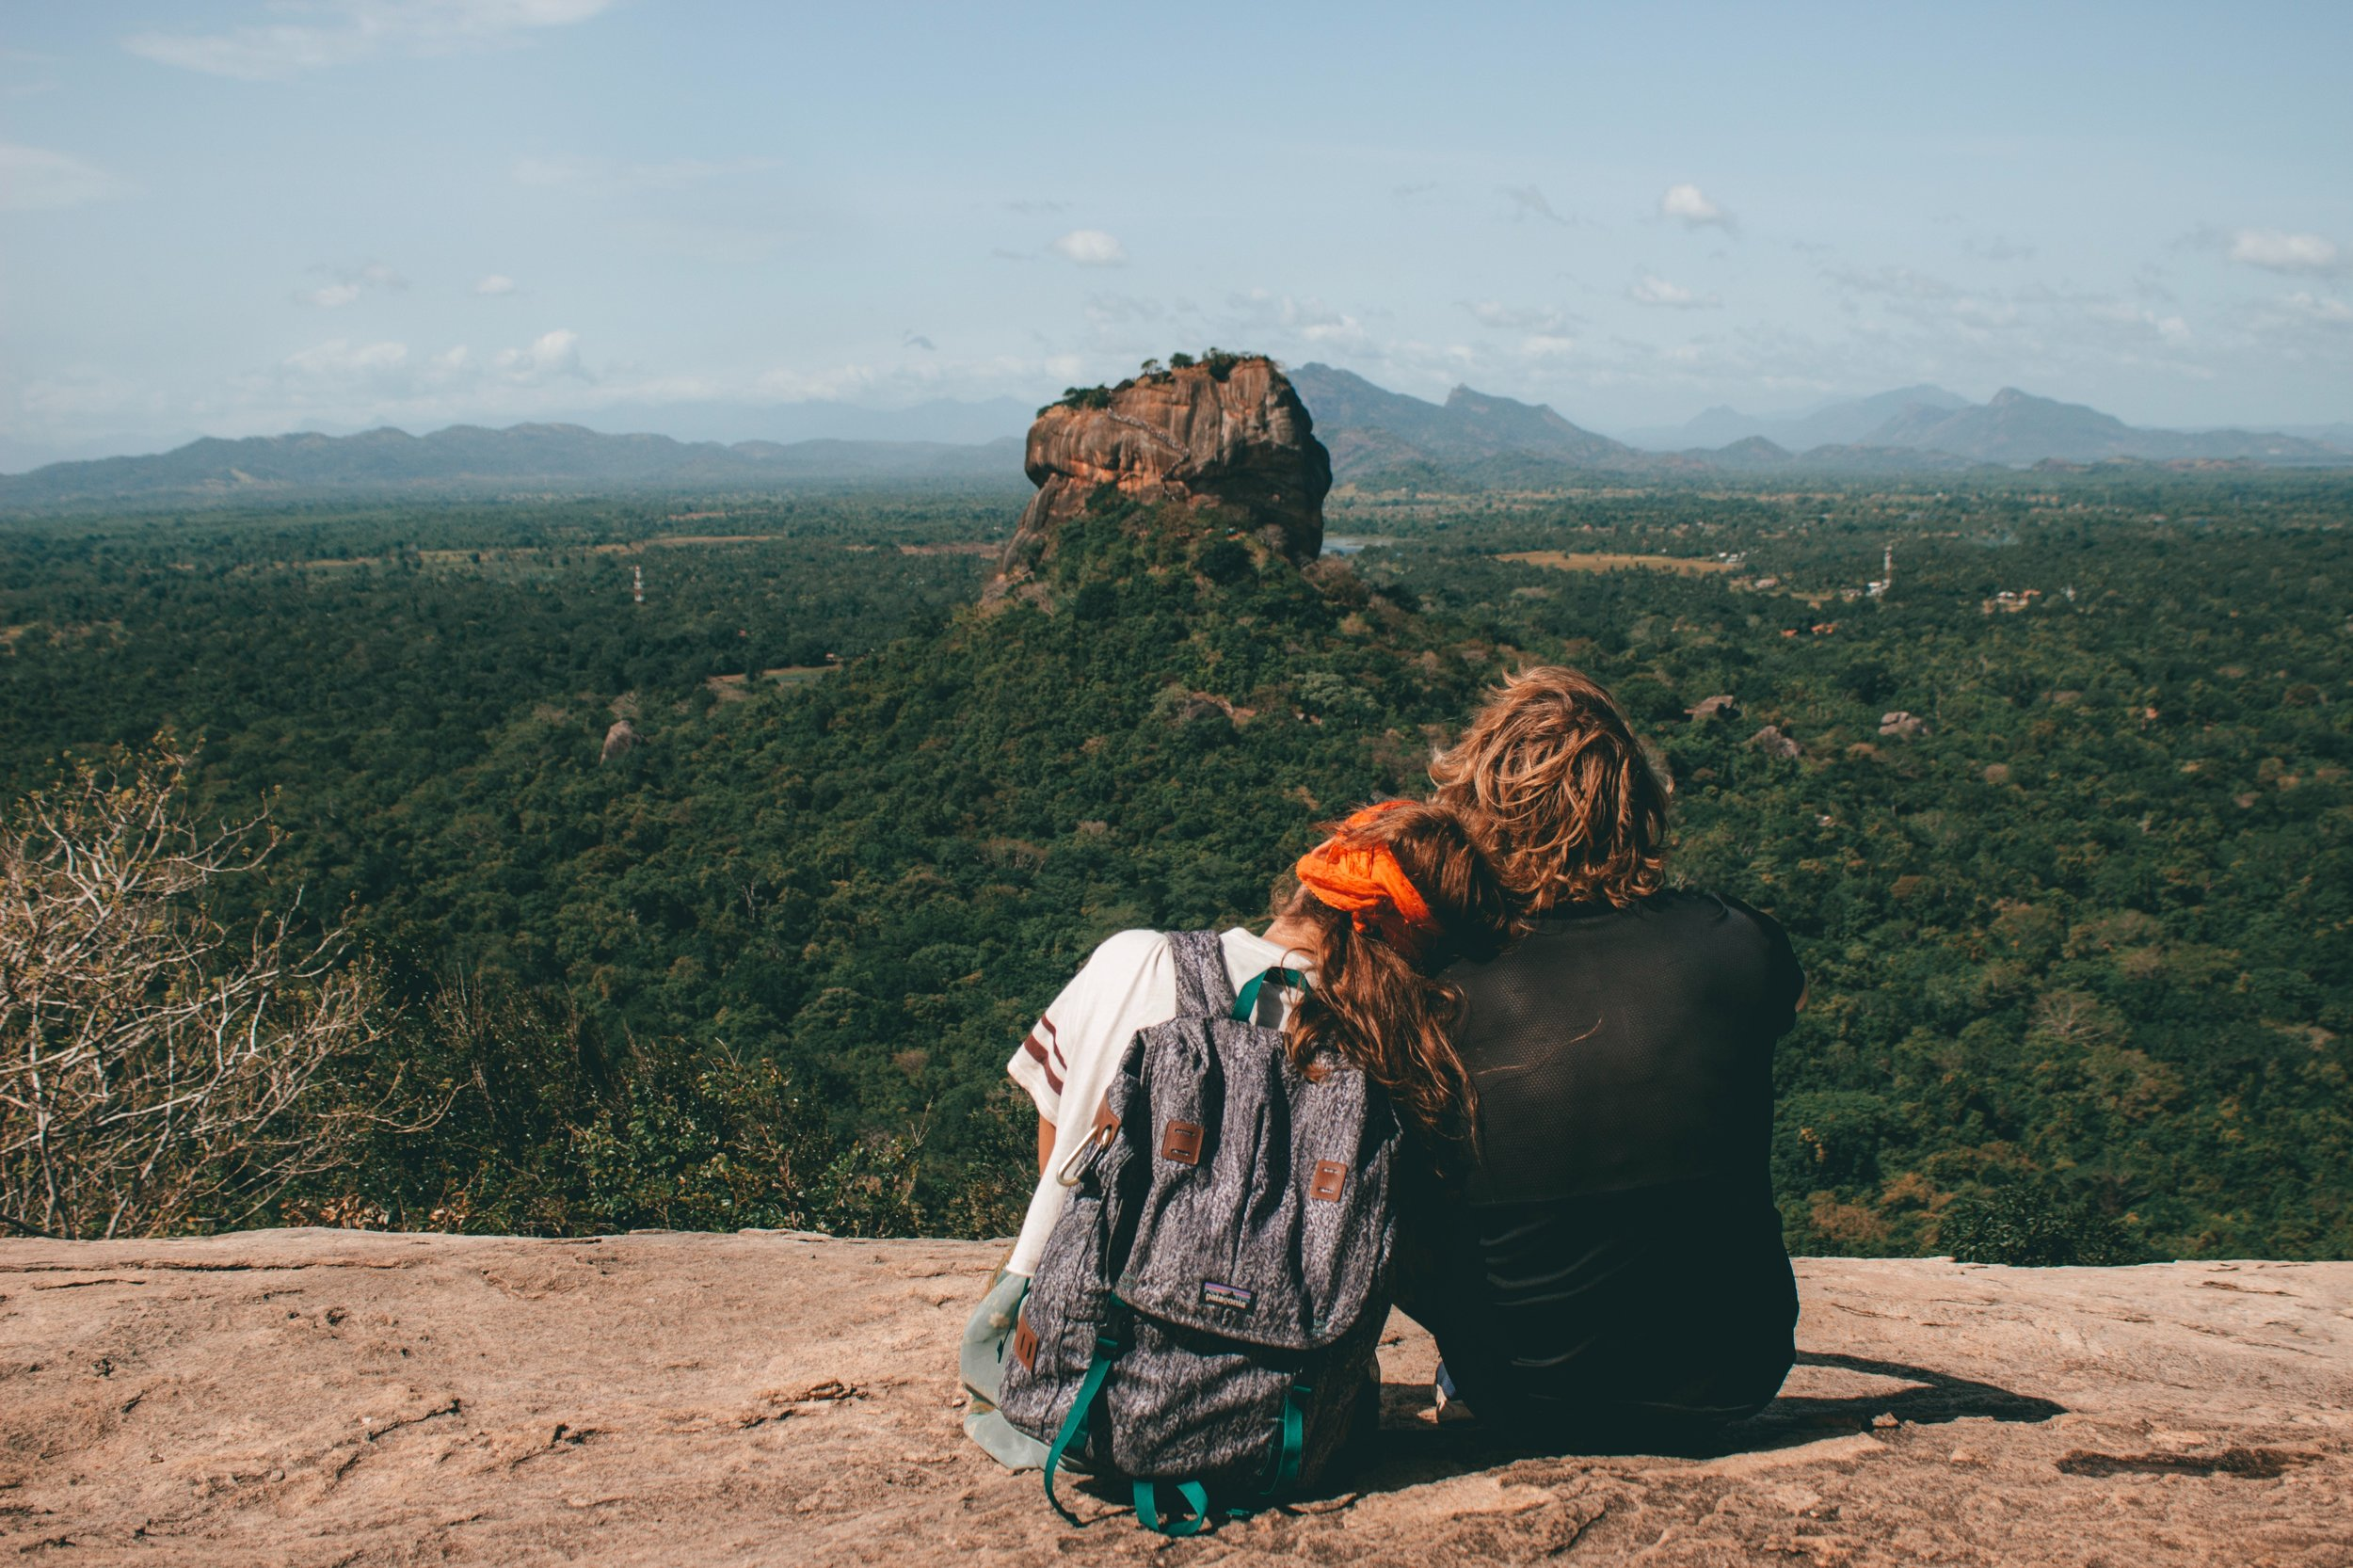 couple looking at rocks surrounded by forest in the distance with beautiful scenery